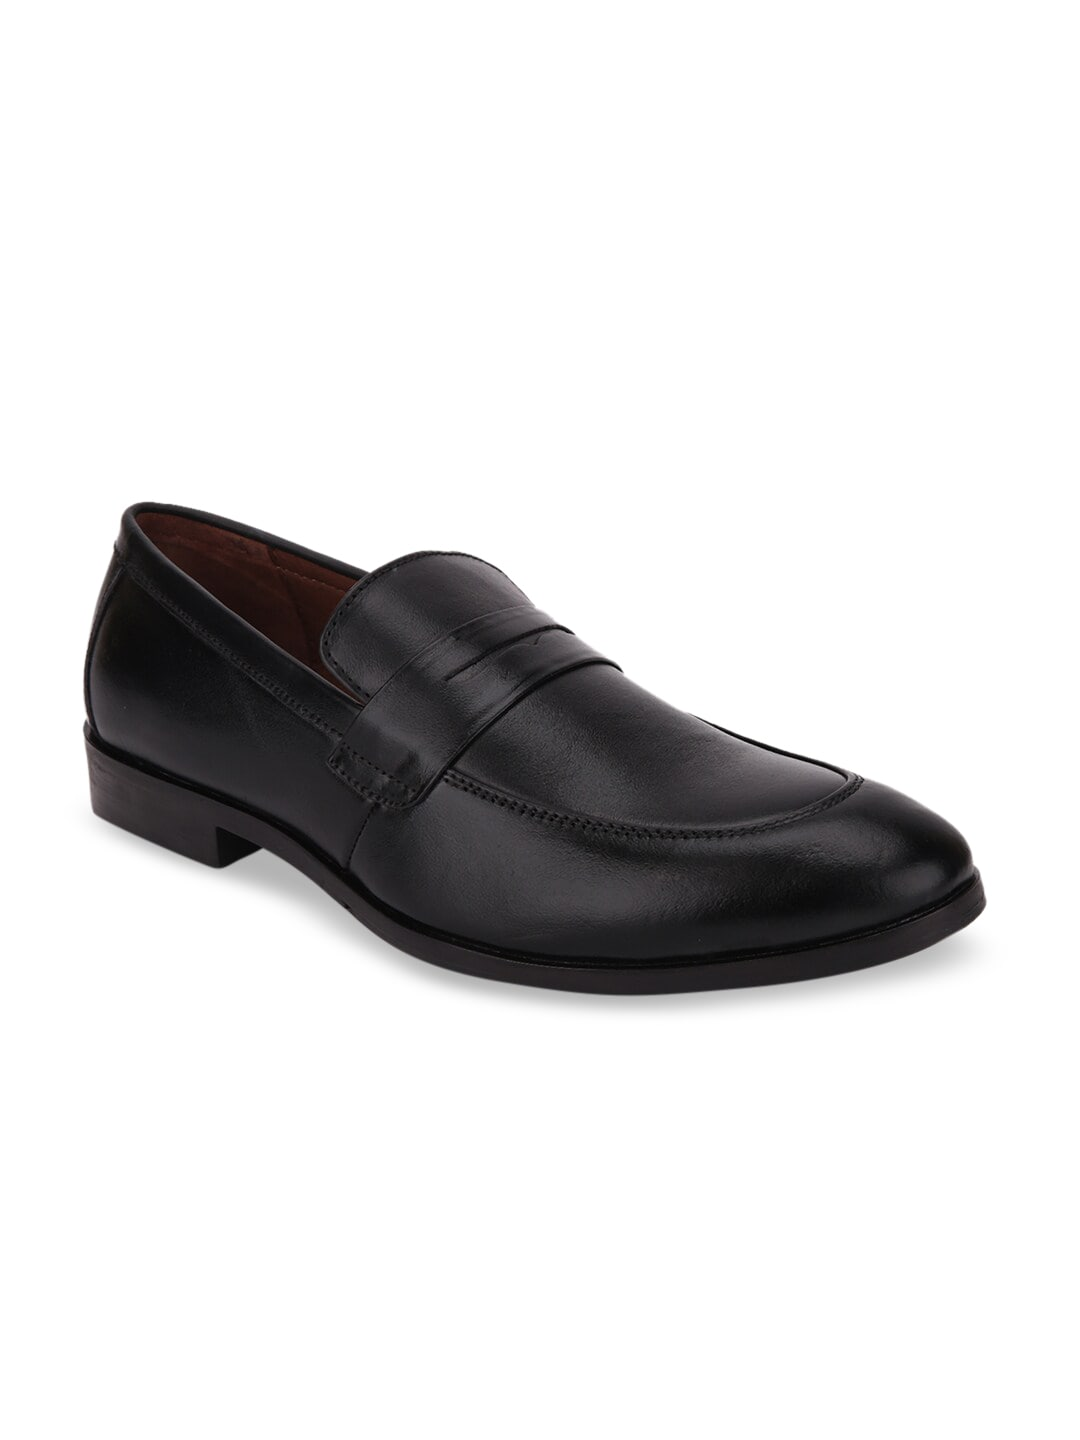 LOUIS STITCH Men Black Solid Leather Formal Slip-Ons